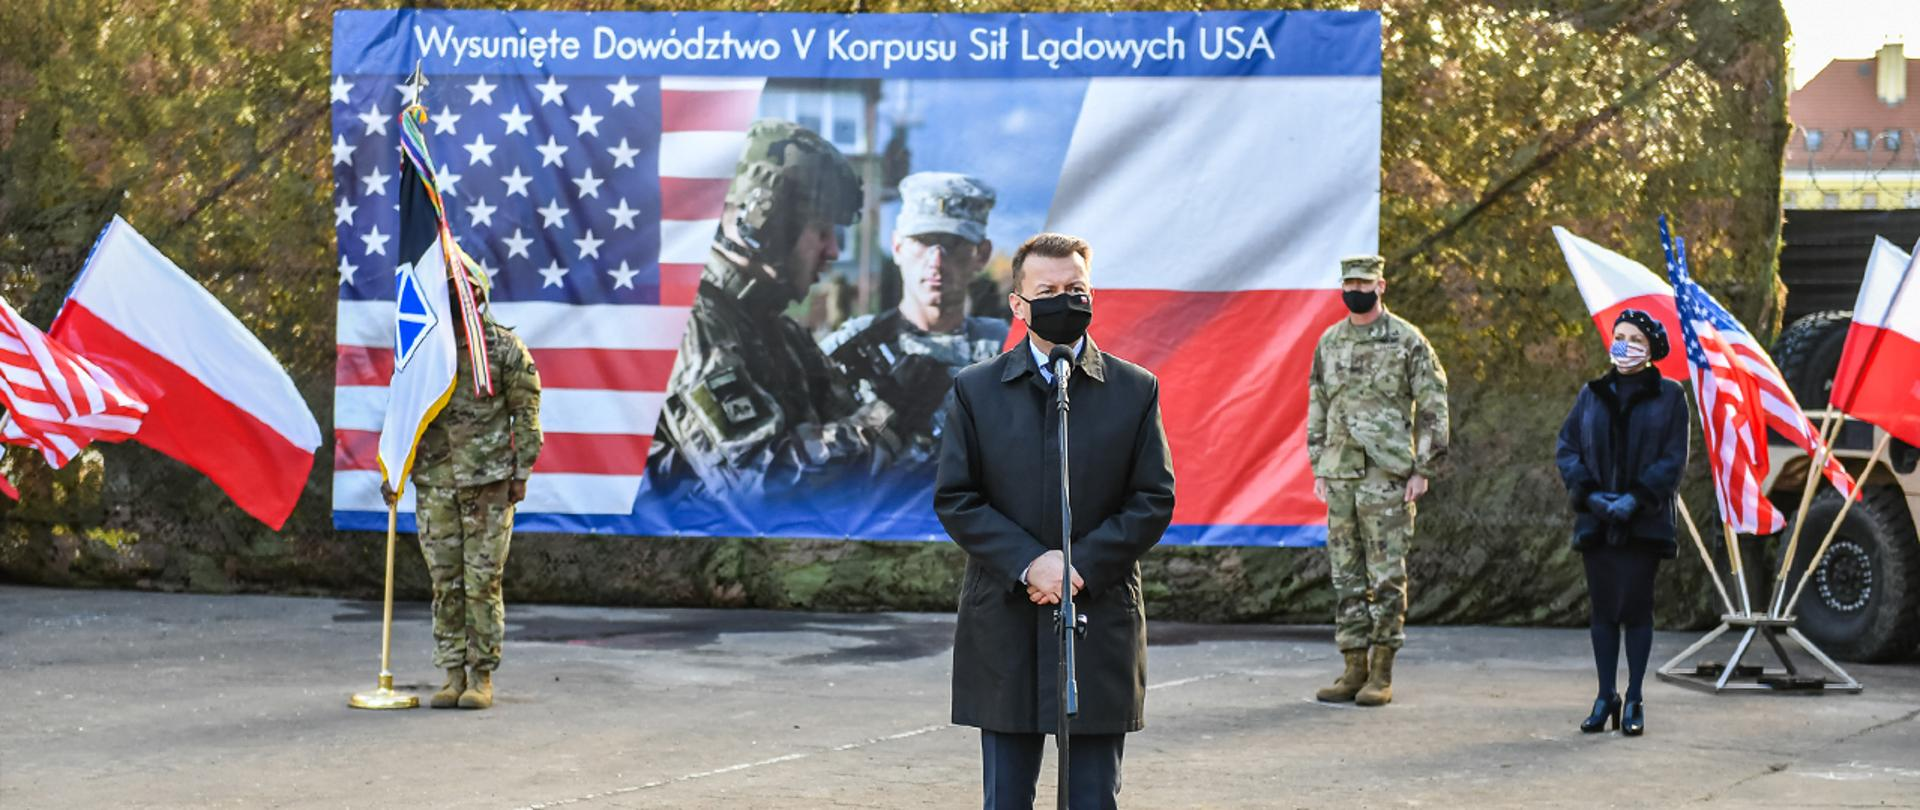 The inauguration of the activities of the Forward Command of the 5th Corps of US Land Forces in Poland